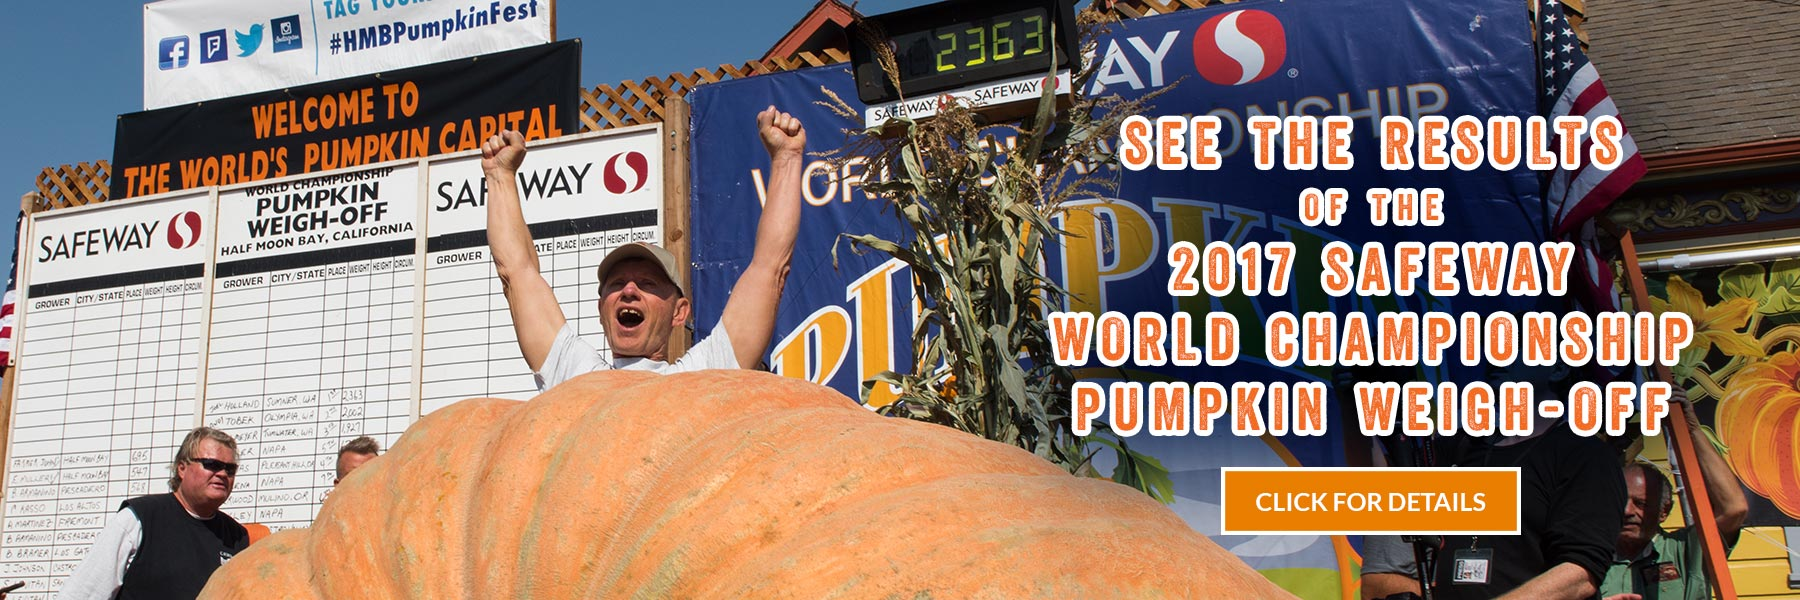 See the results of the 2017 Safeway World Championship Pumpkin Weigh-Off - click for details